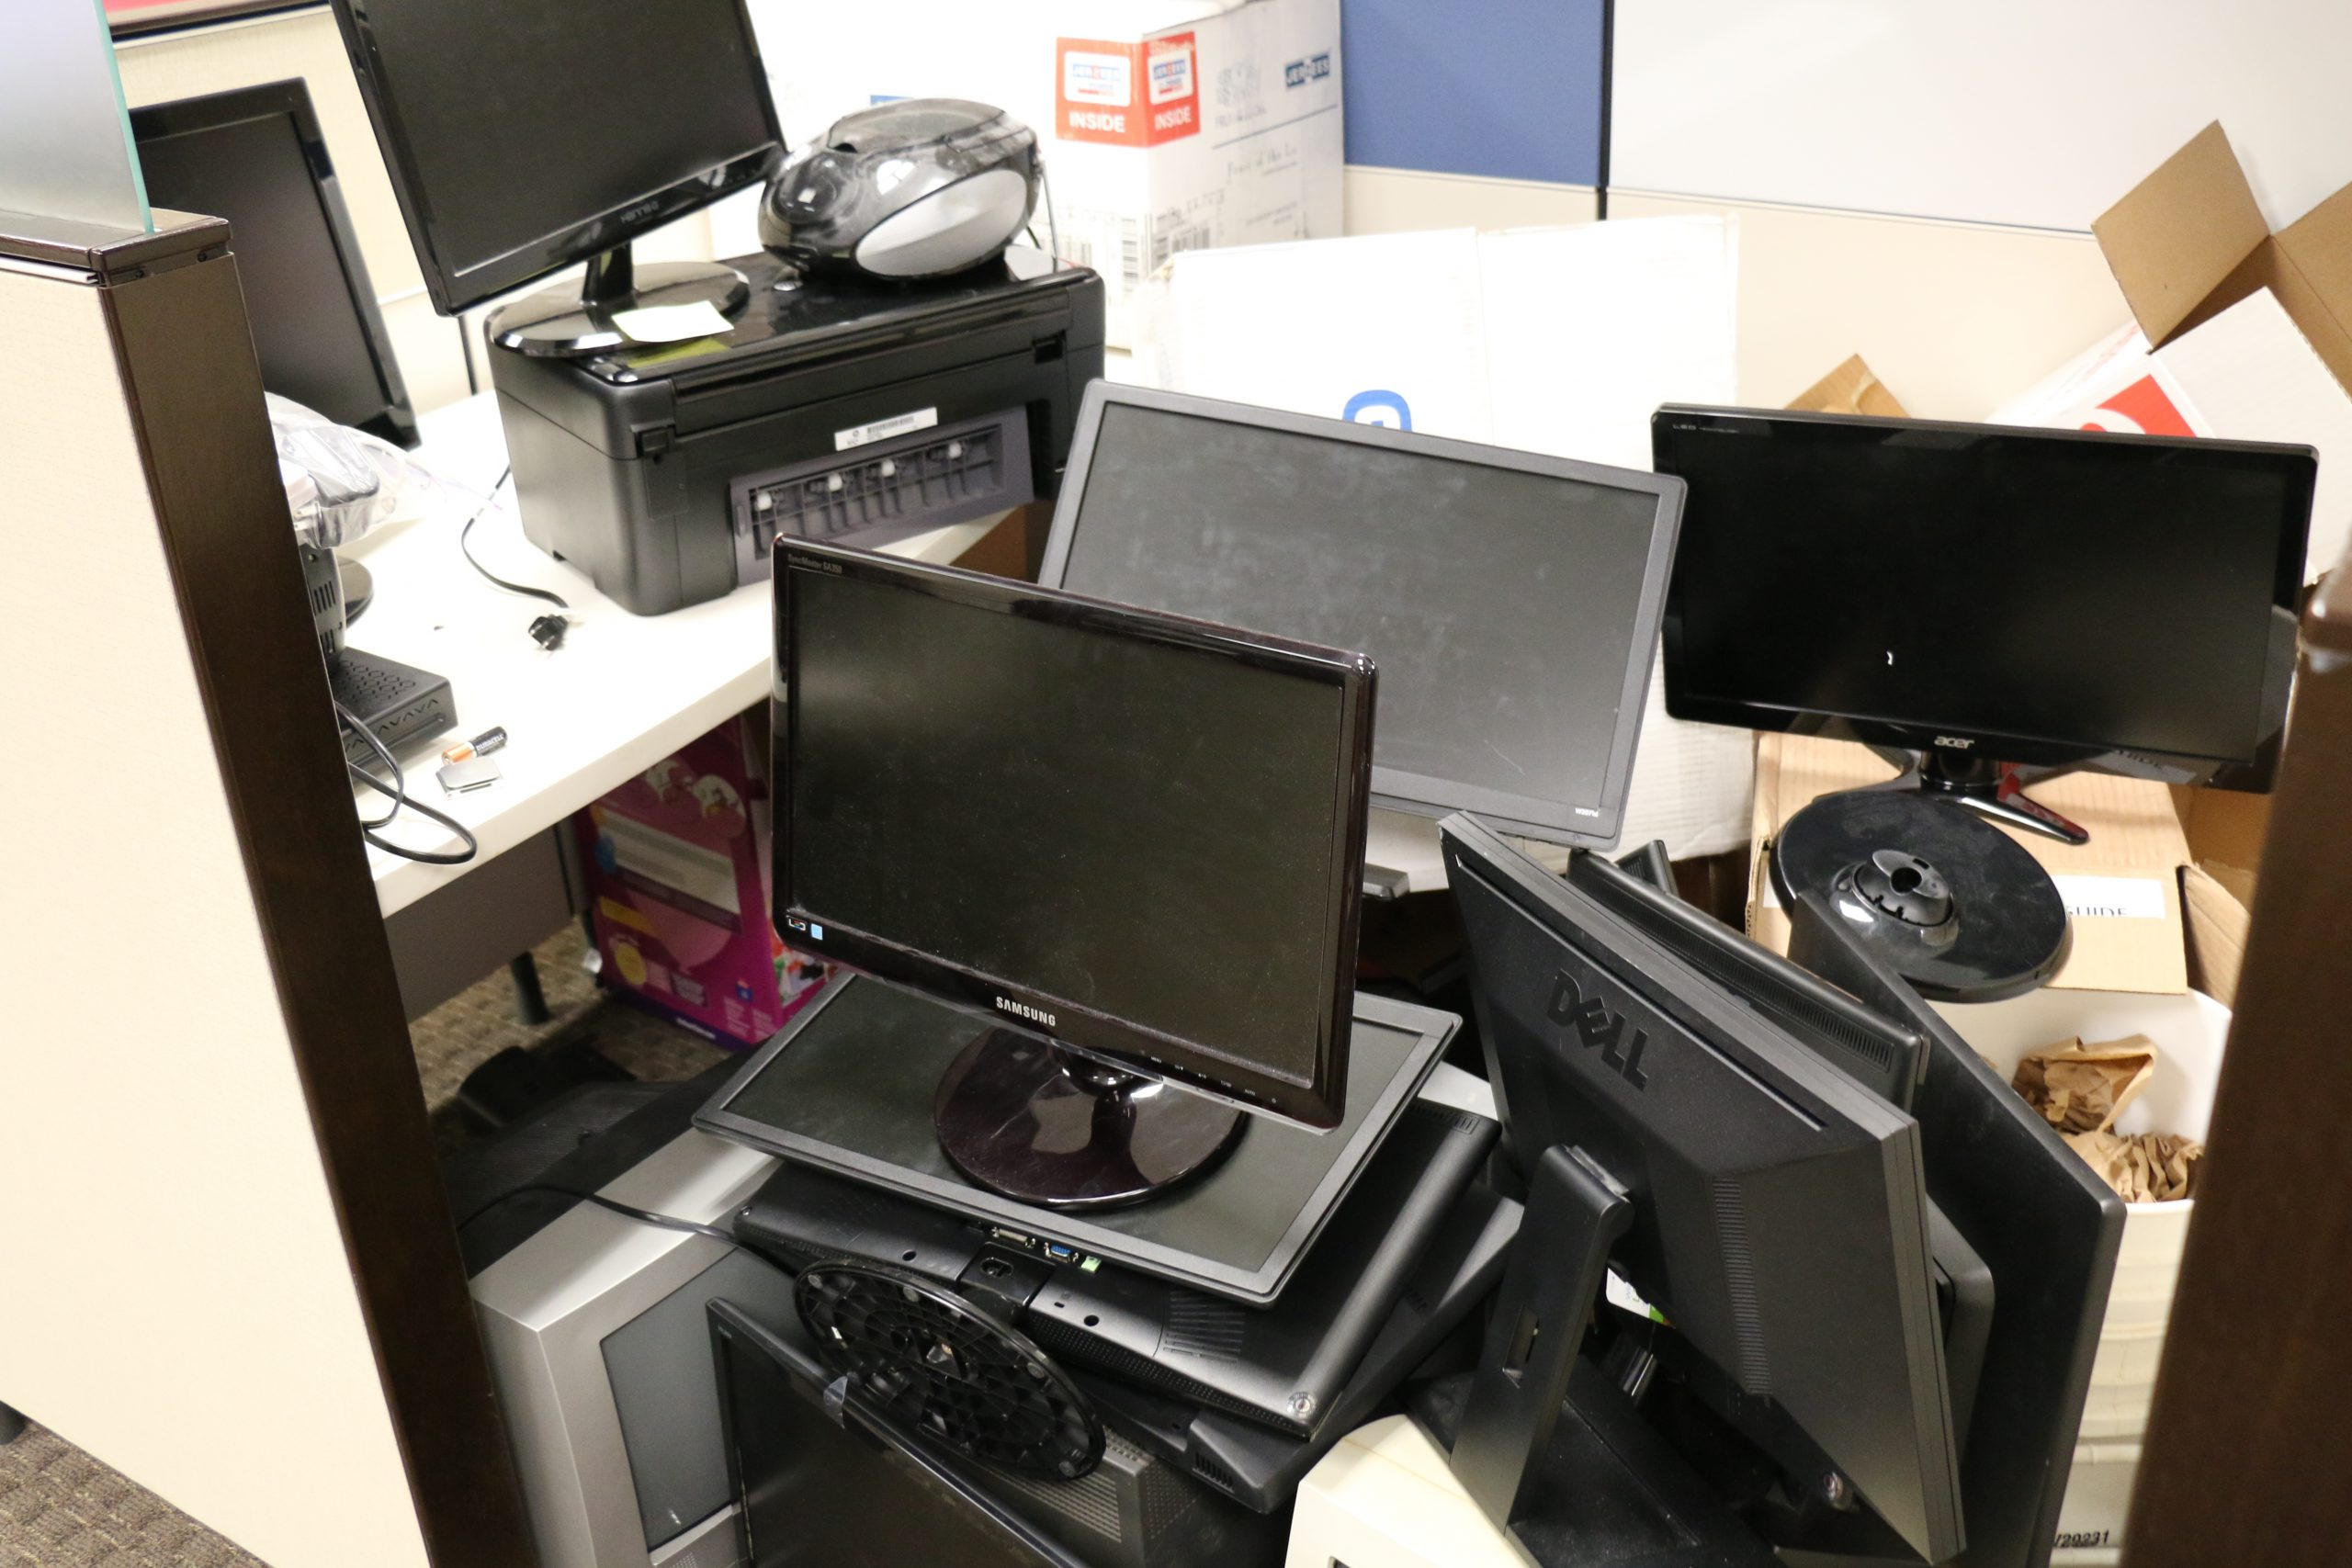 Indianapolis Recycle Force, we recycle electronics to give others a second chance.